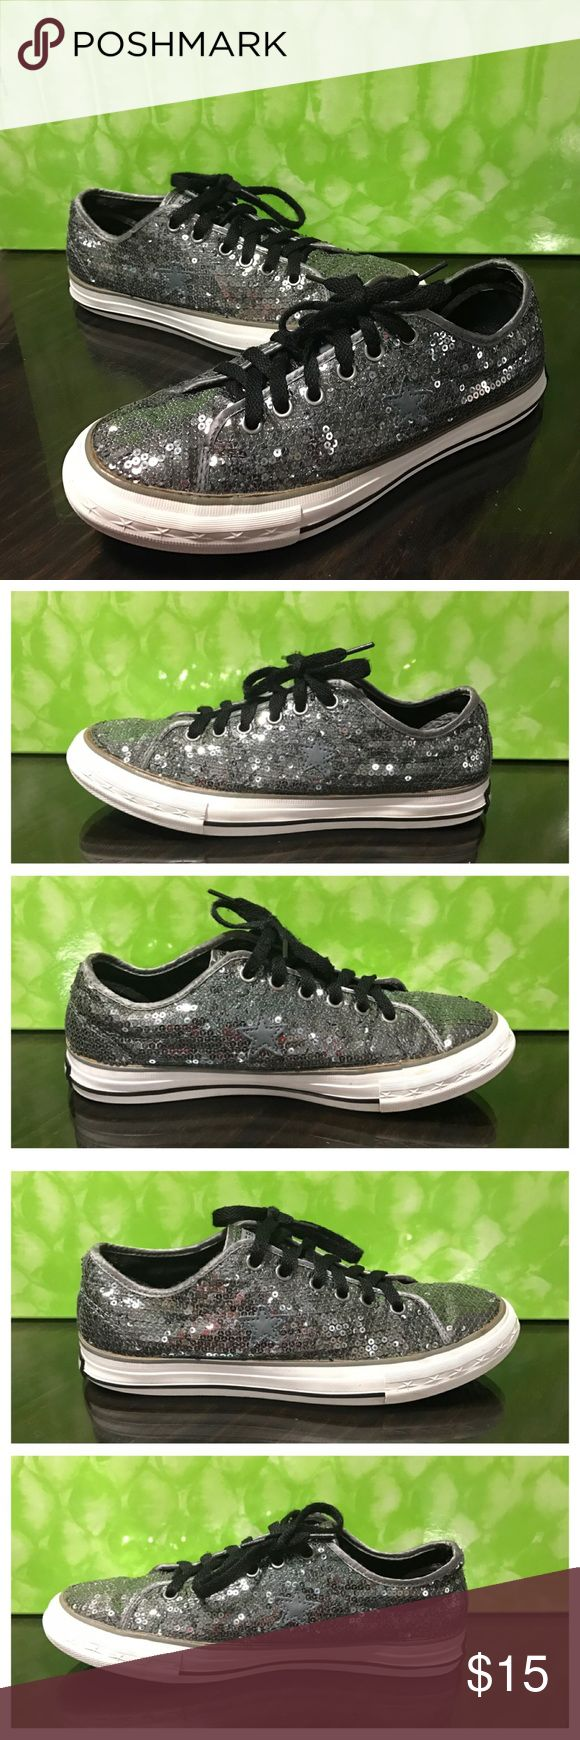 Converse one star shoes In good condition only has a few missing shown in the last picture but nothing that is noticeable. Please carefully review each photo before you purchase since this is the best description for the item. Converse Shoes Sneakers